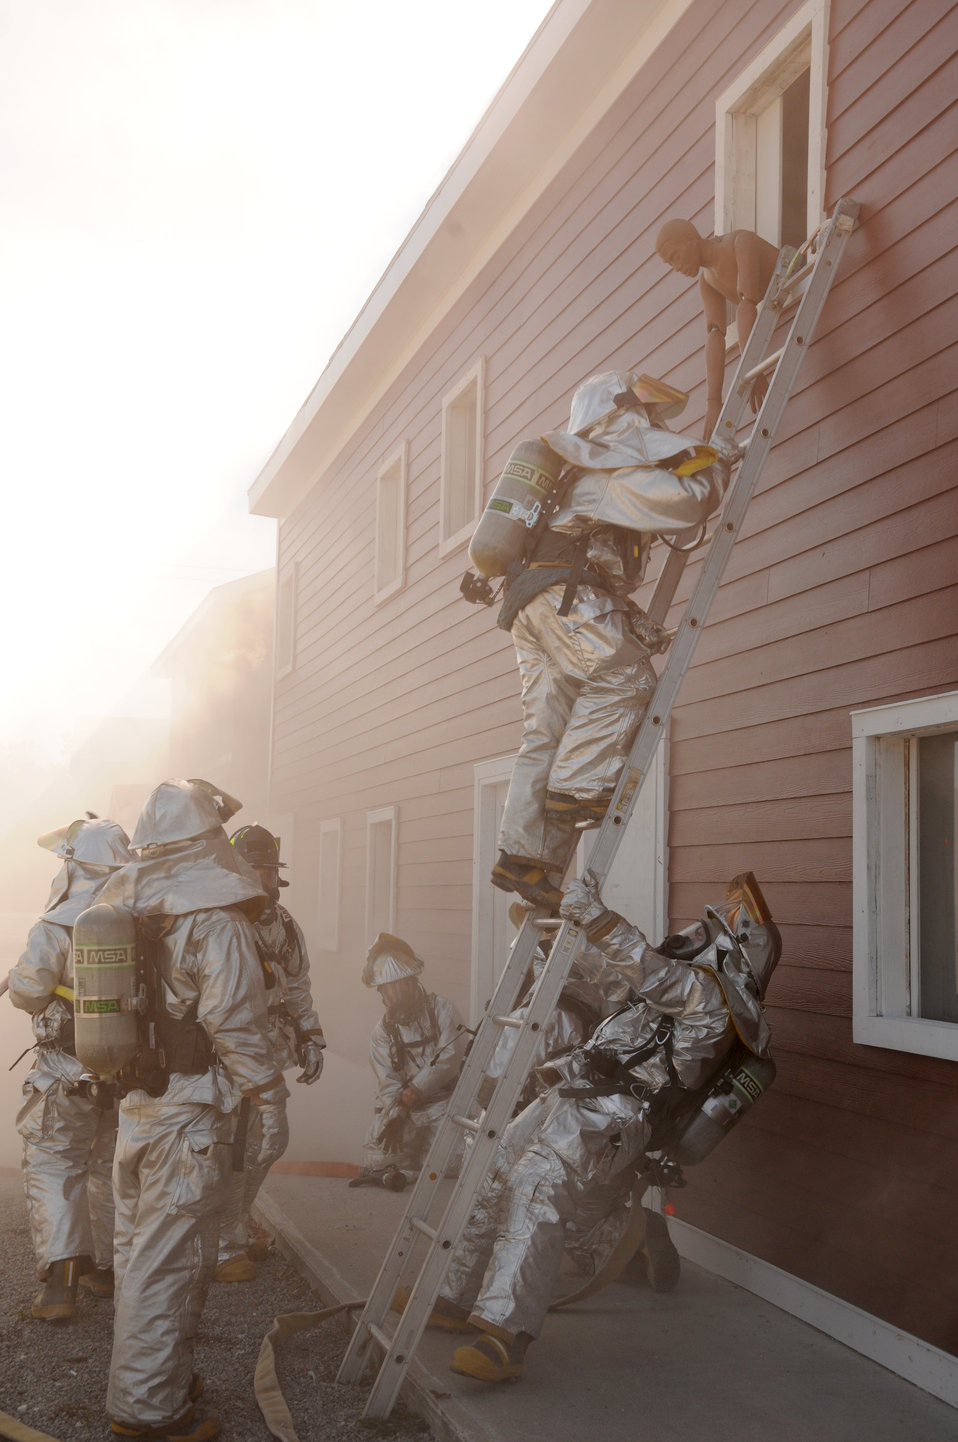 Firefighters sharpen their skills